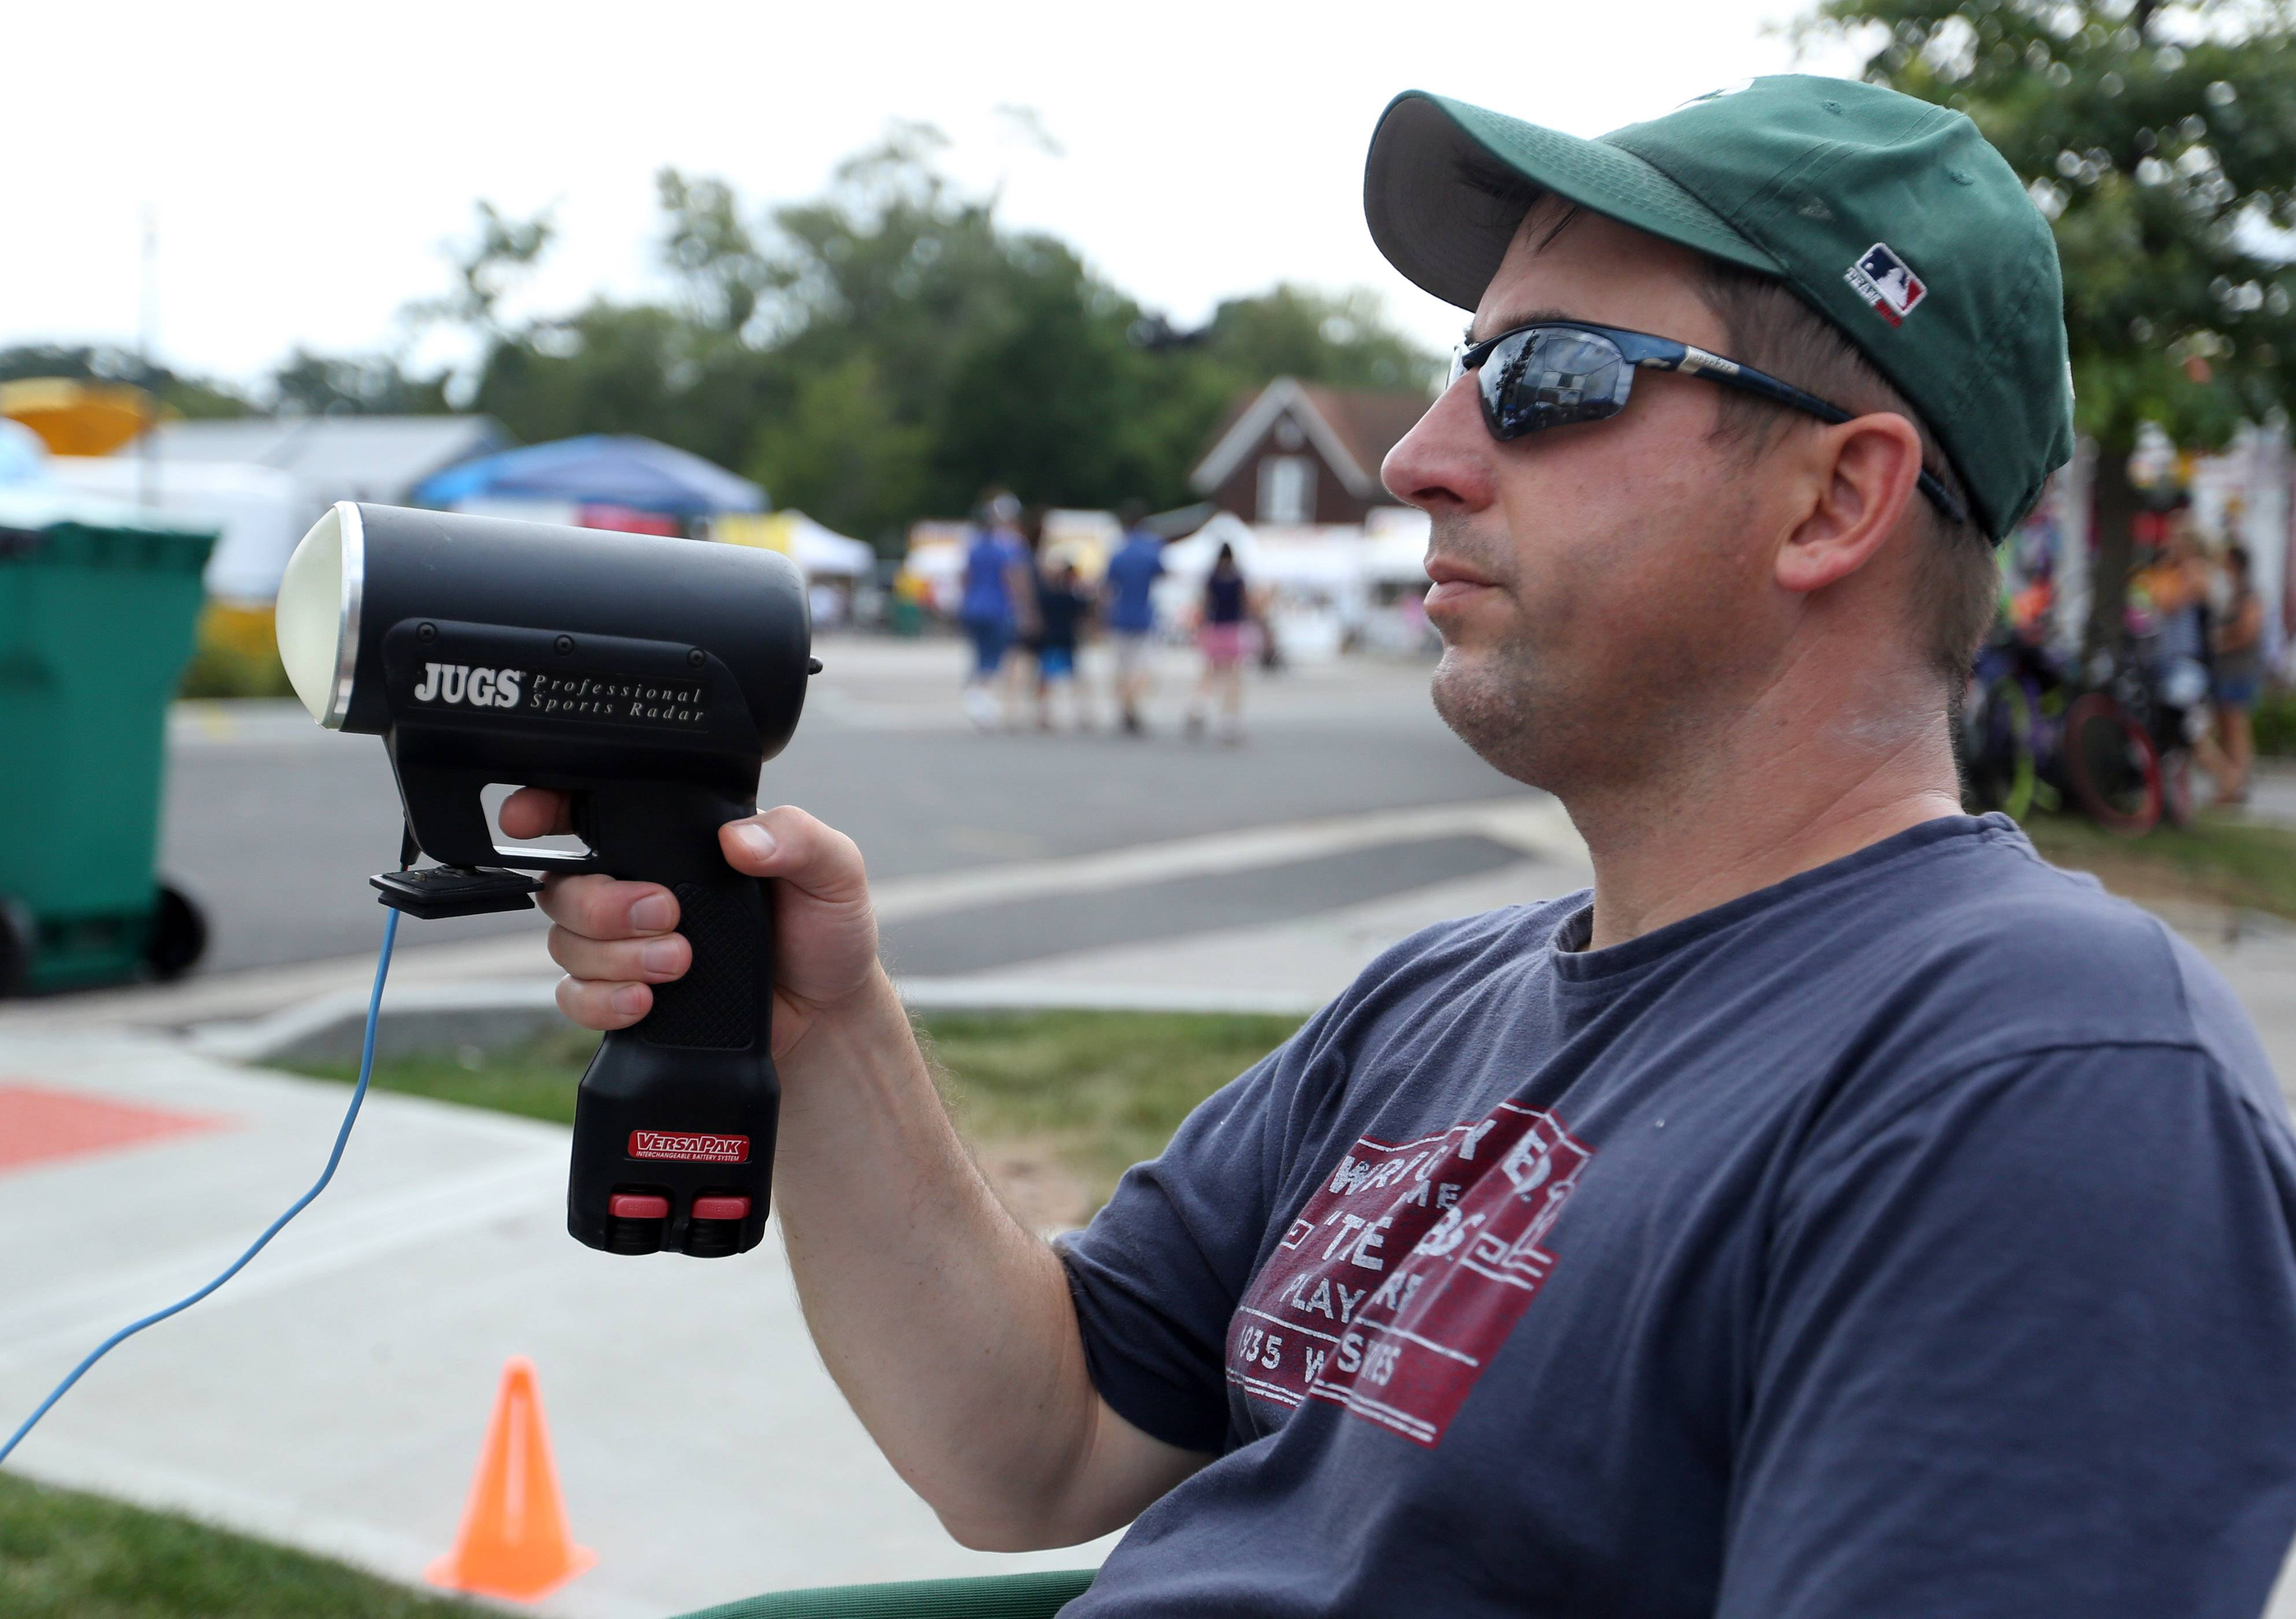 Jim Chamernik, a coach with Grayslake Youth Baseball Association, times a pitch using a radar gun at the association's pitching booth on Saturday during the second day of the Grayslake Summer Days festival in downtown.